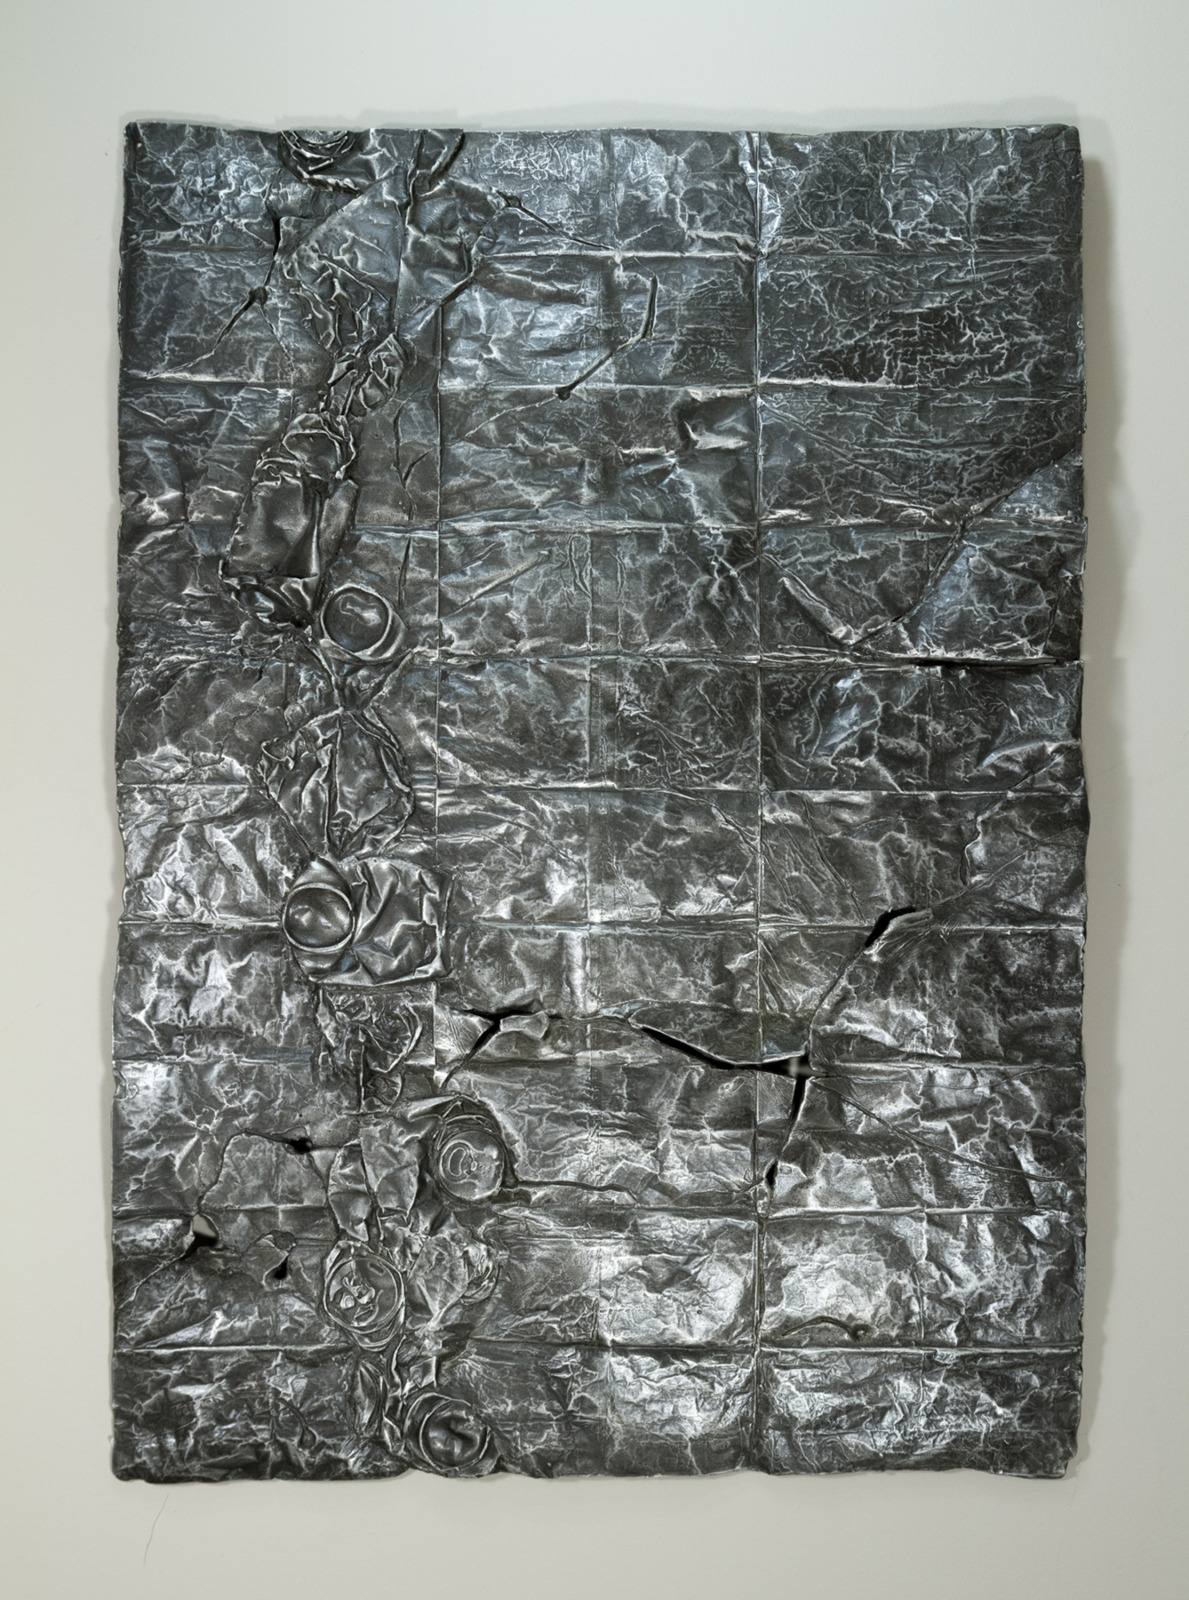 Simandou Mountain Range, Guinea, aluminum sculpture, 71 cm x 91cm x 2 cm, 2013-4. Guineau is the top exporter of Bauxite ore. Mining right to the Simandou mountain range were sold for several billions of dollars following bribes by the firm BSGR to the ex-president's ex-wives.